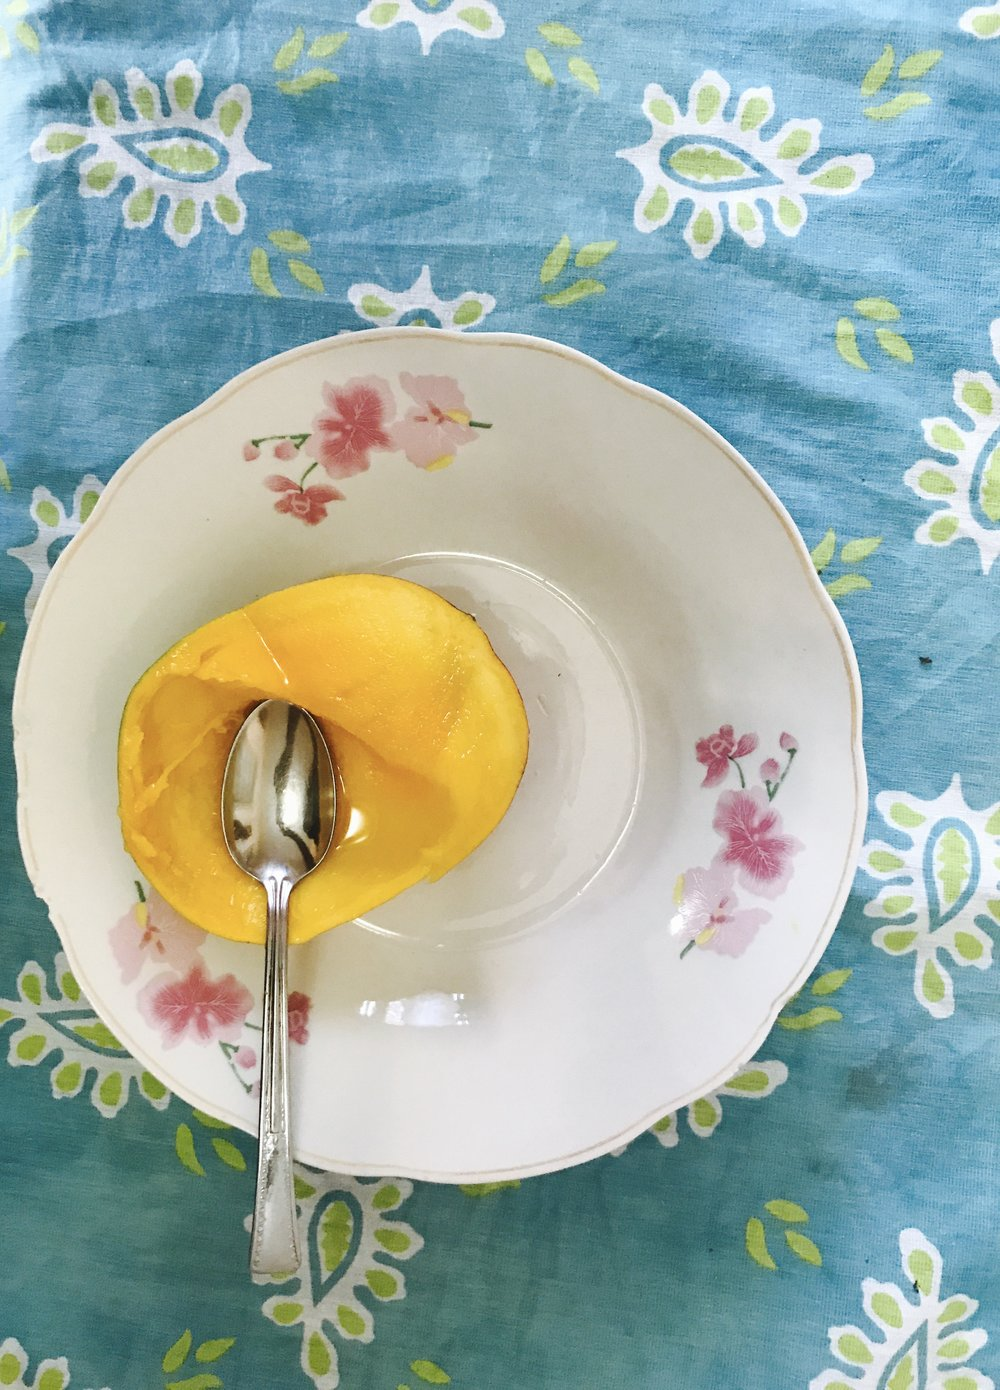 Enjoying a mango - with a spoon for the first time.